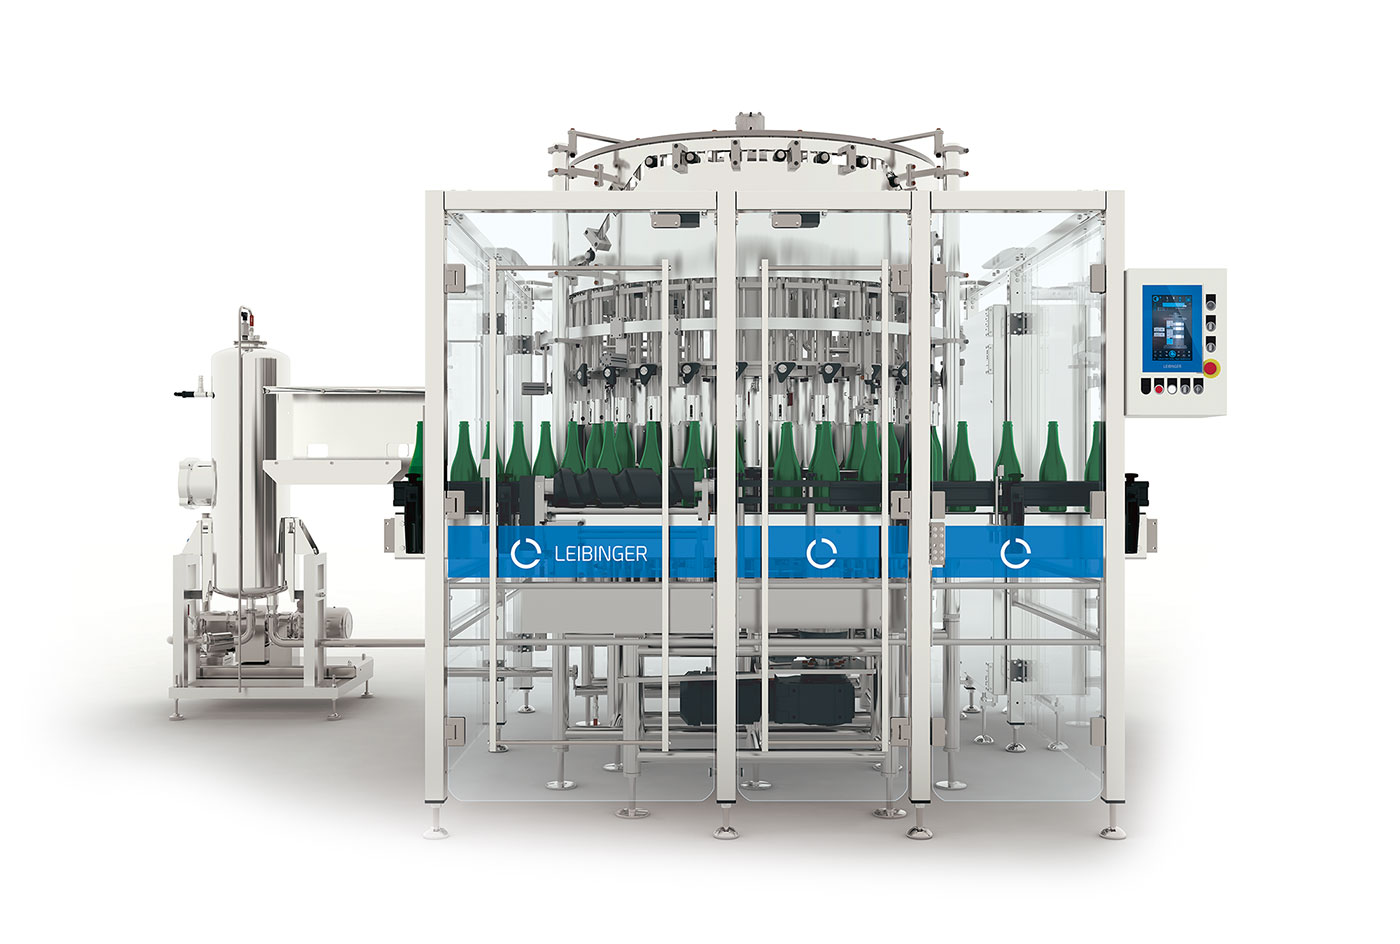 Leibinger TRANSVASA Transvasion machine for bottle fermented sparkling wine